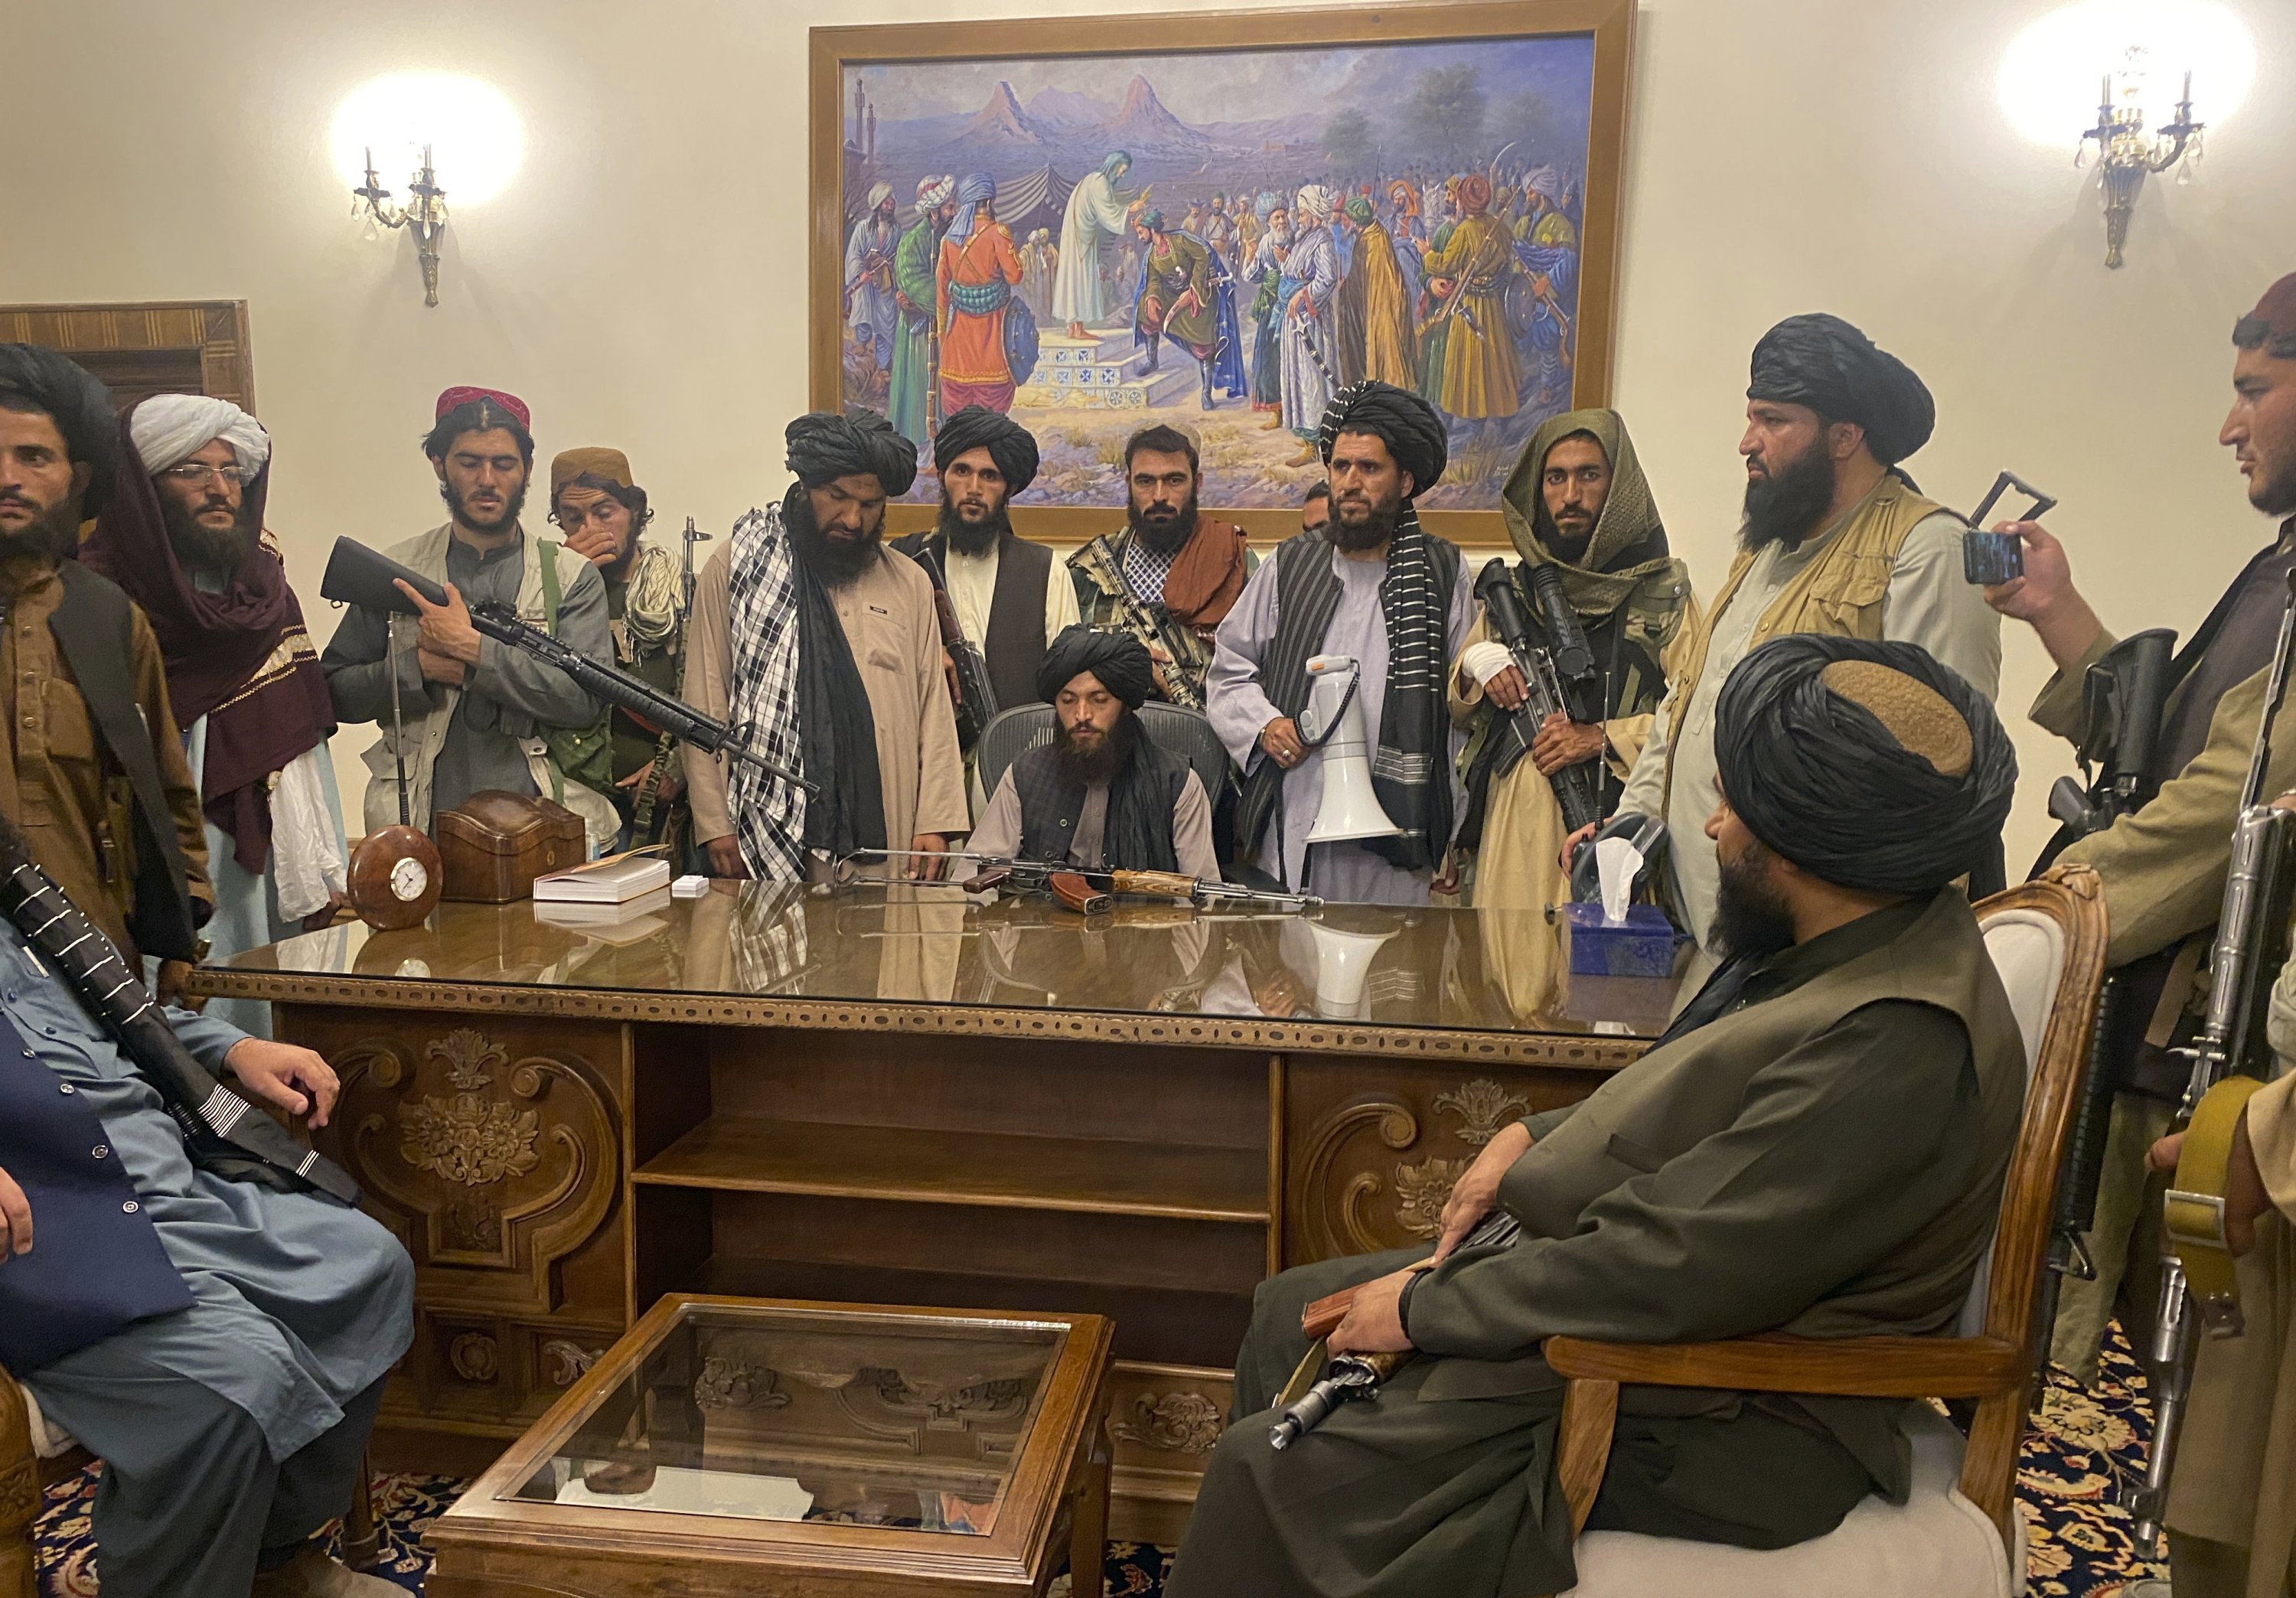 Taliban fighters take control of the Afghan presidential palace after President Ashraf Ghani fled the country, Kabul, Afghanistan, Aug. 15, 2021. (AP Photo)